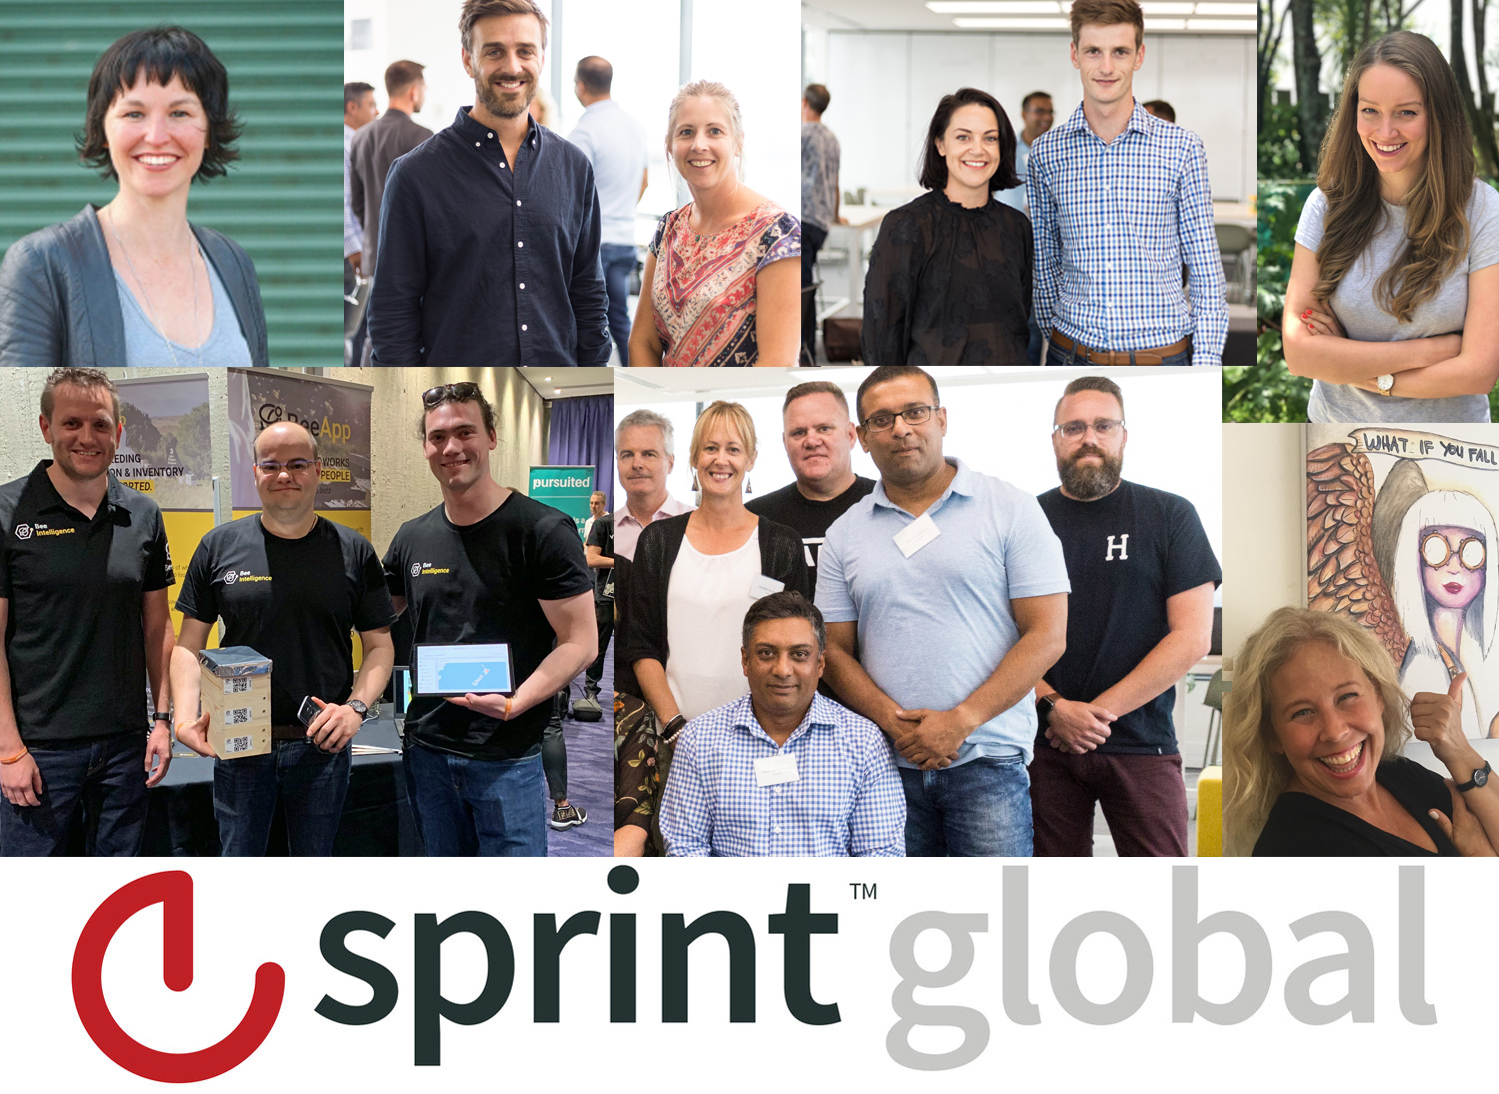 SprintGlobal-Startups-2019 cohort collage.jpg